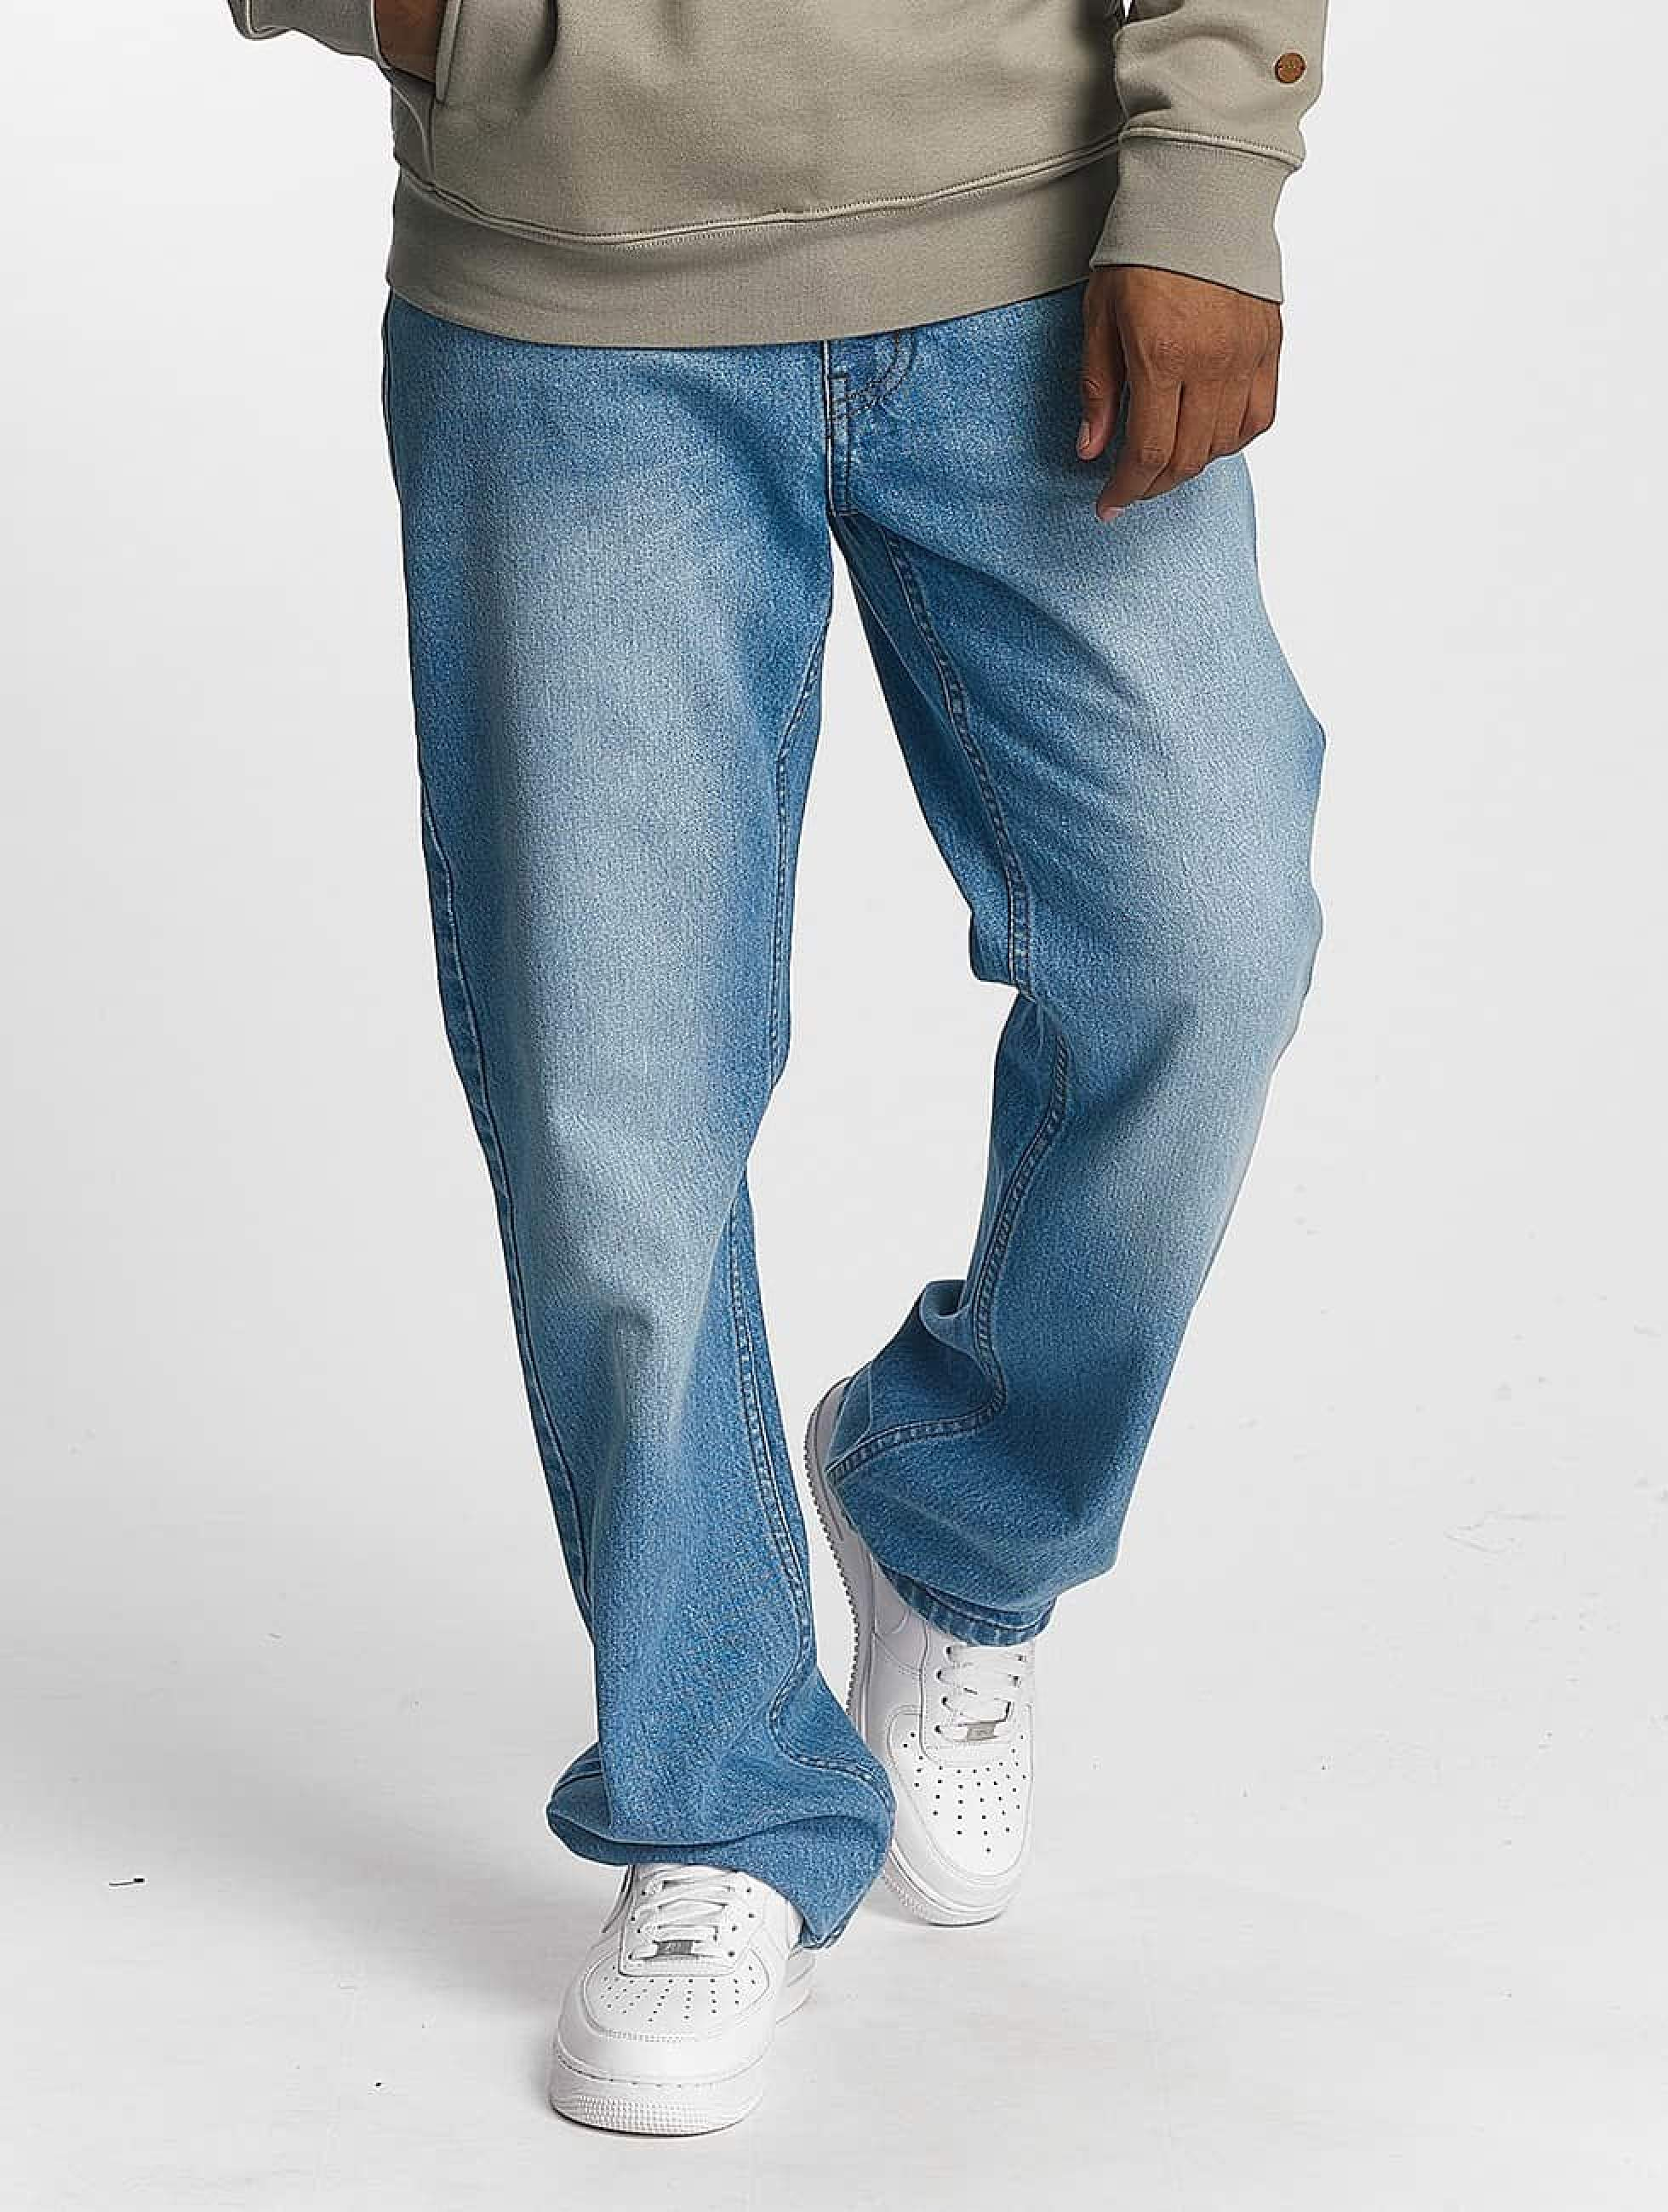 Rocawear / Loose Fit Jeans 90TH in blue W 42